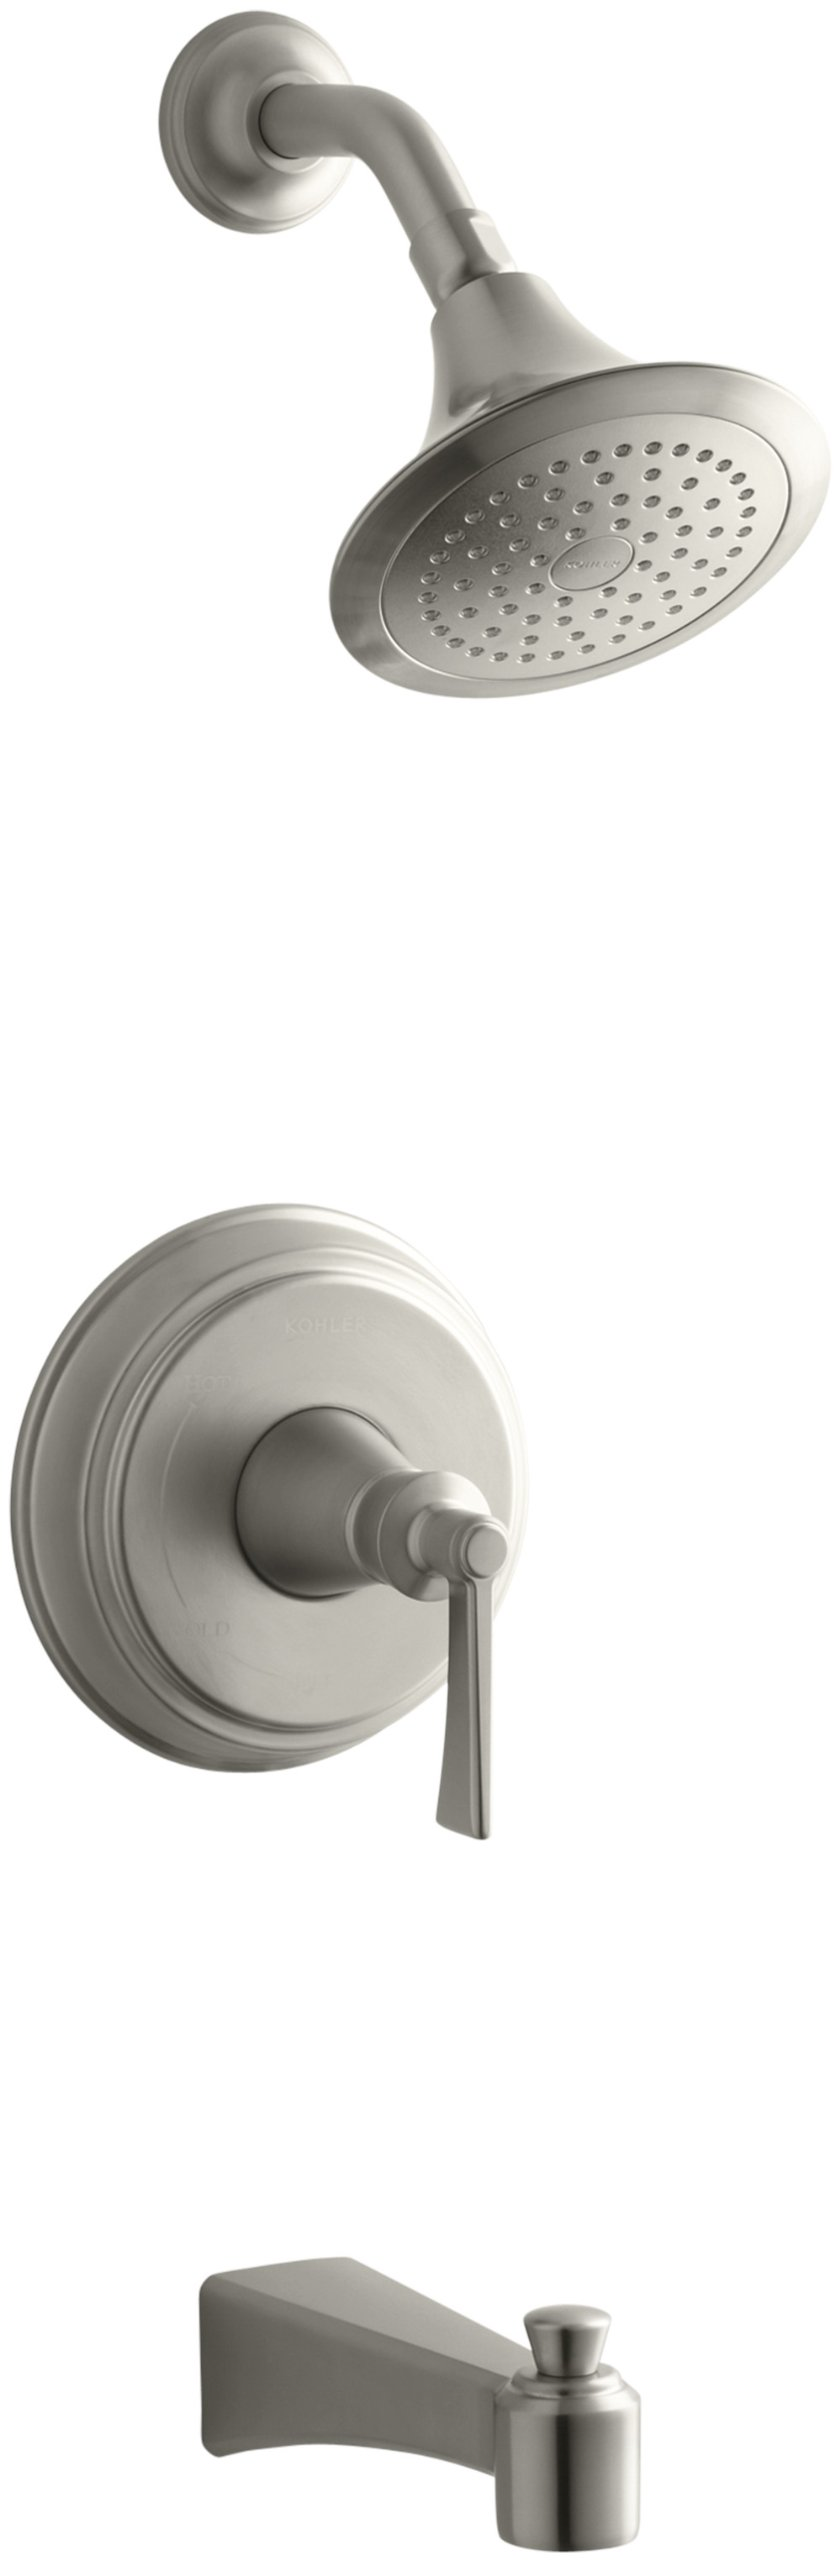 KOHLER K-T11077-4E-BN Archer Bath/Shower Trim Set, Valve Not Included, Vibrant Brushed Nickel by Kohler